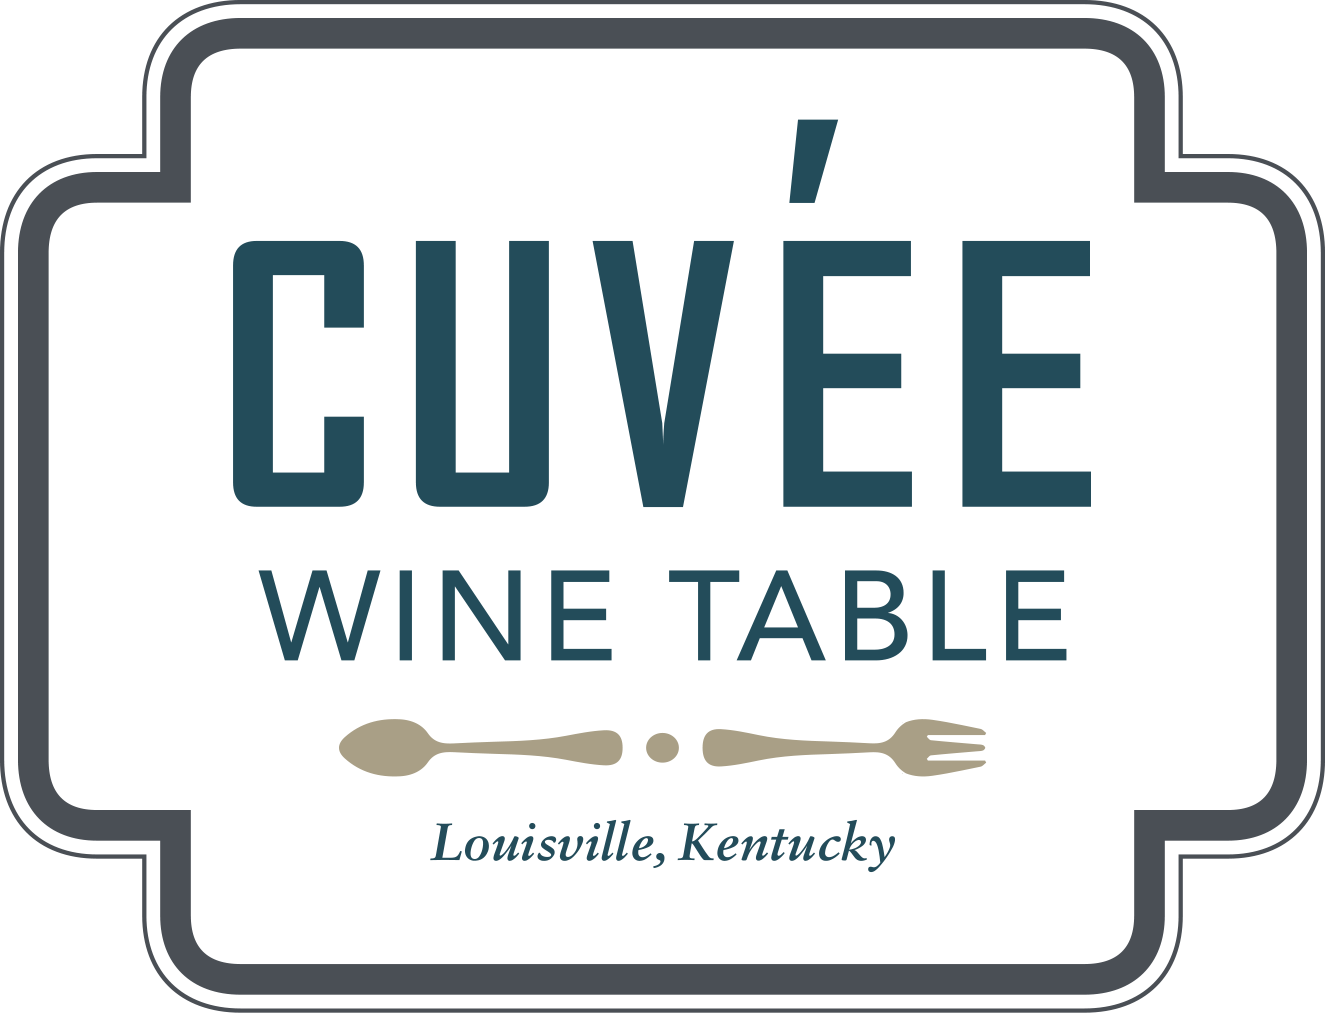 Cuvee Wine Table